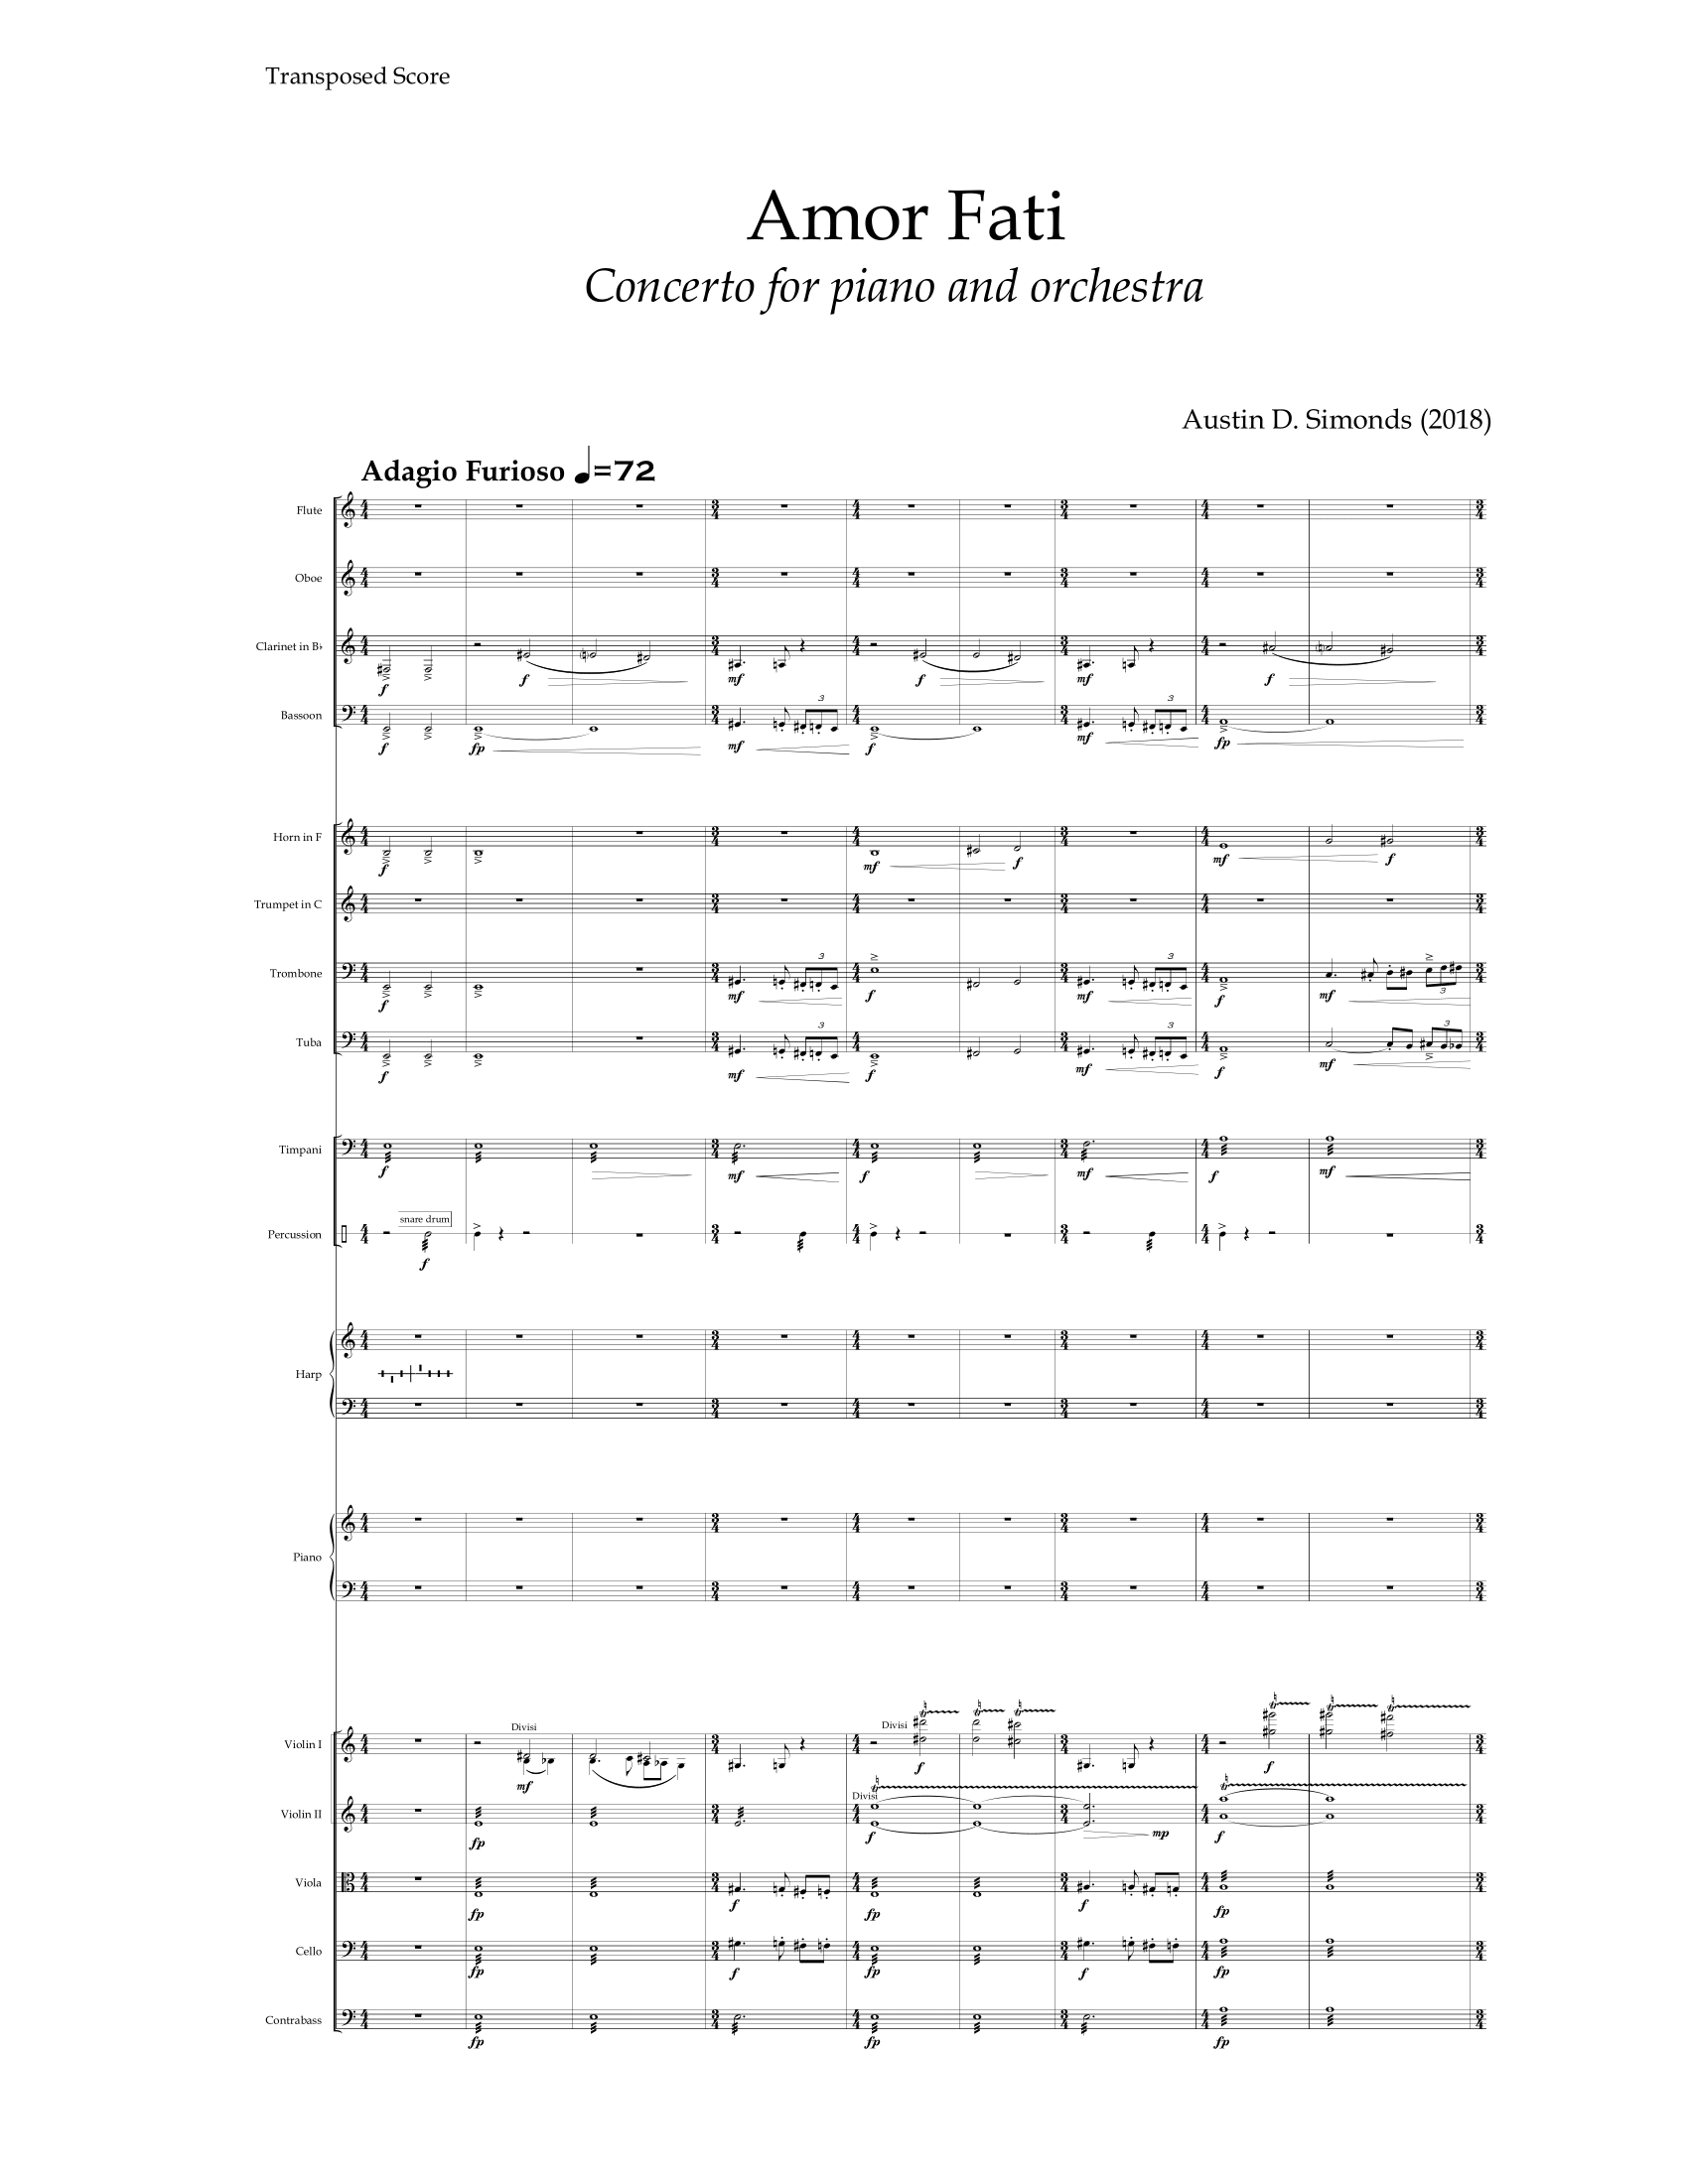 PDF File score sample-1.png